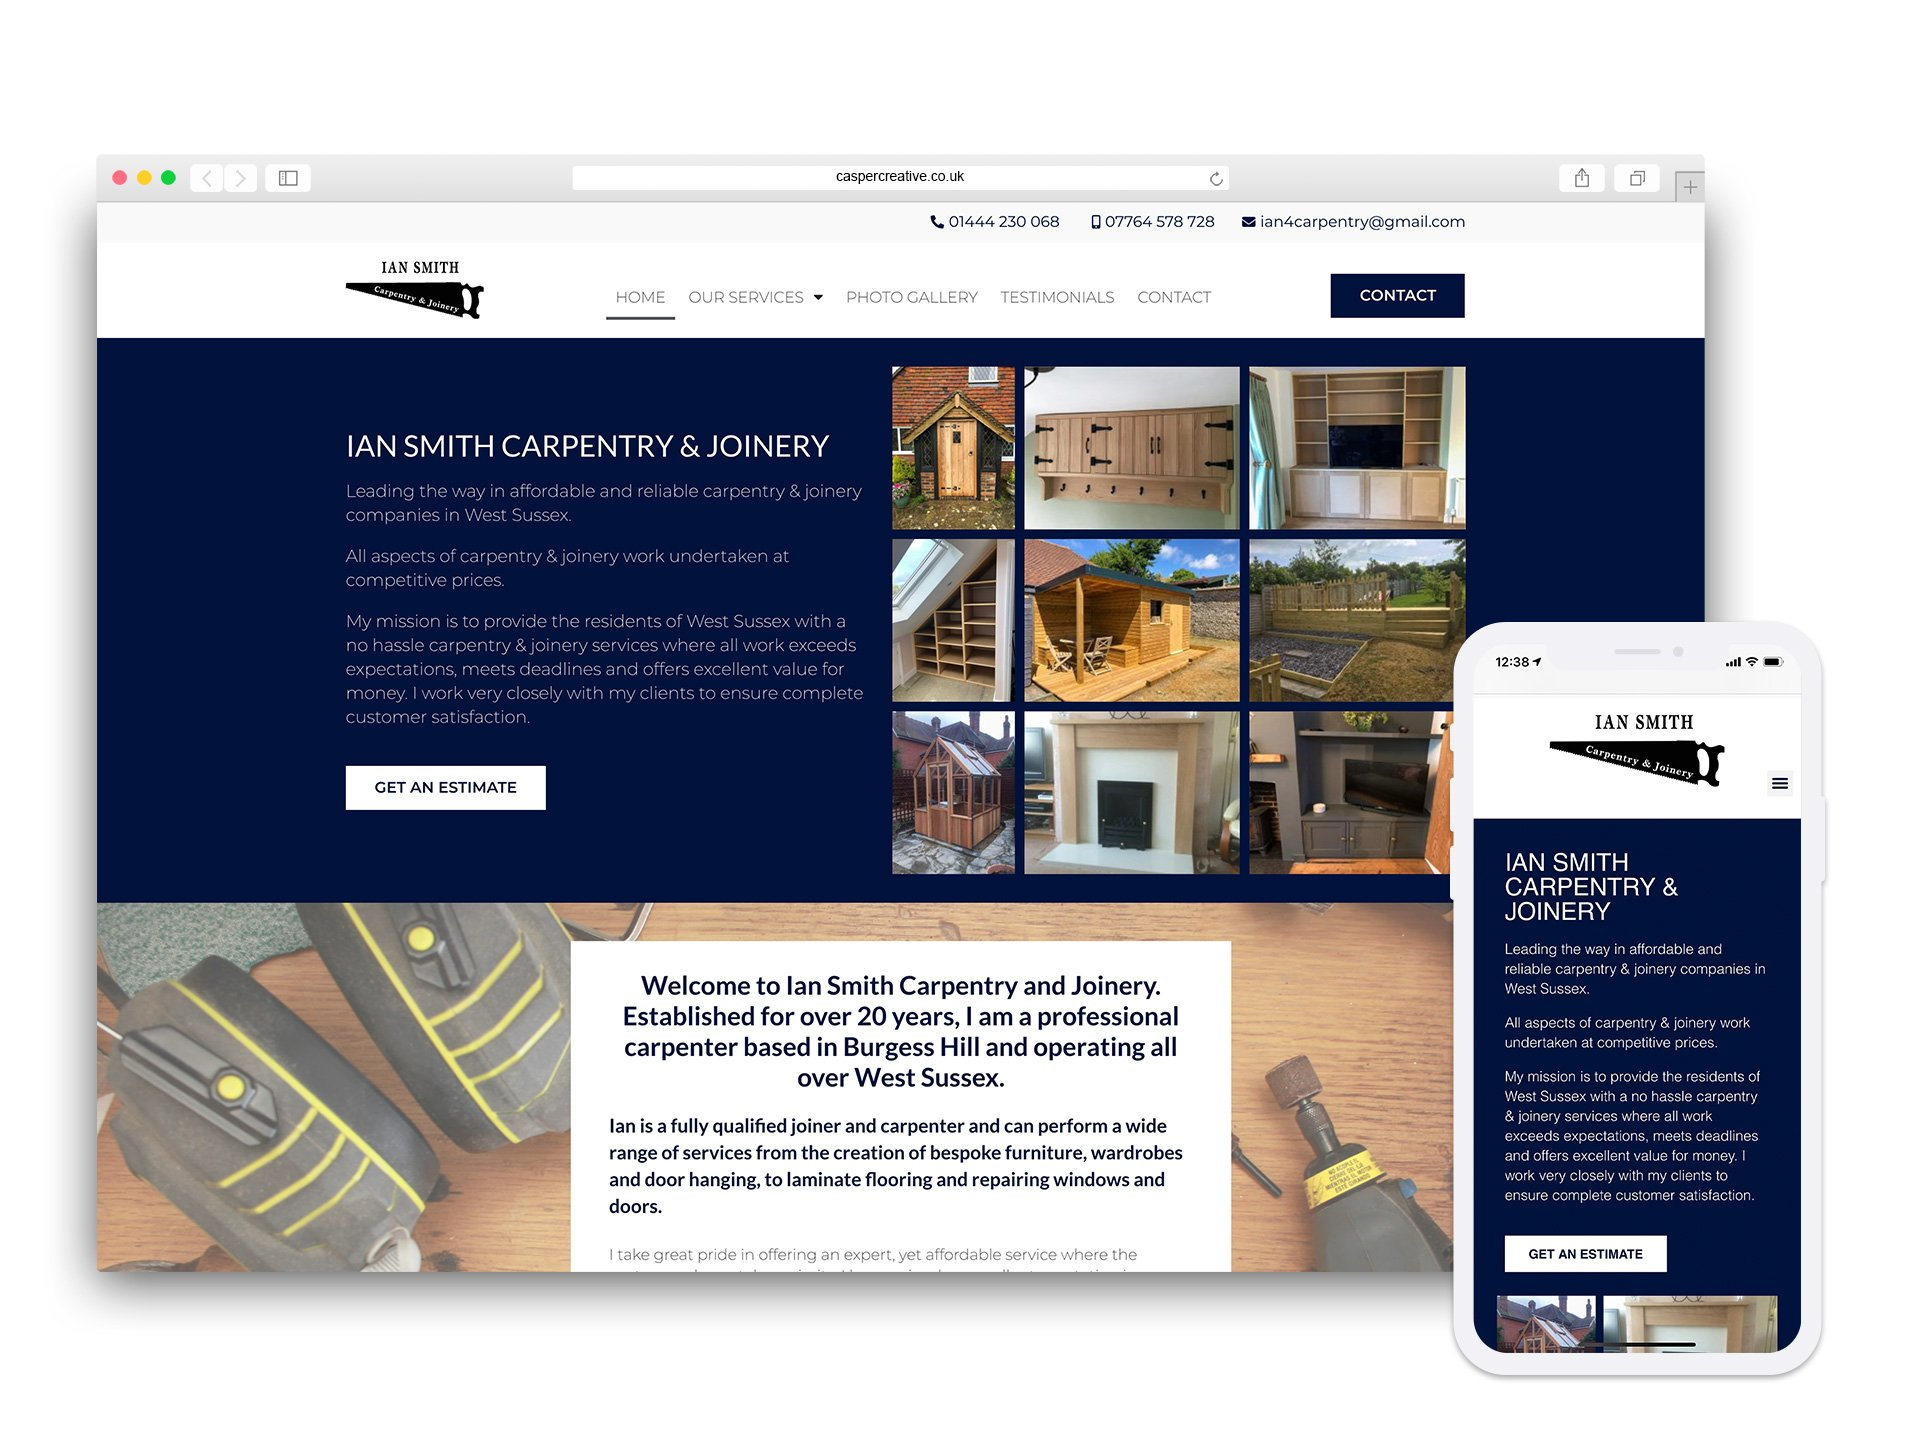 Ian Smith Carpentry & Joinery Website - Designed and Developed by Casper Creative